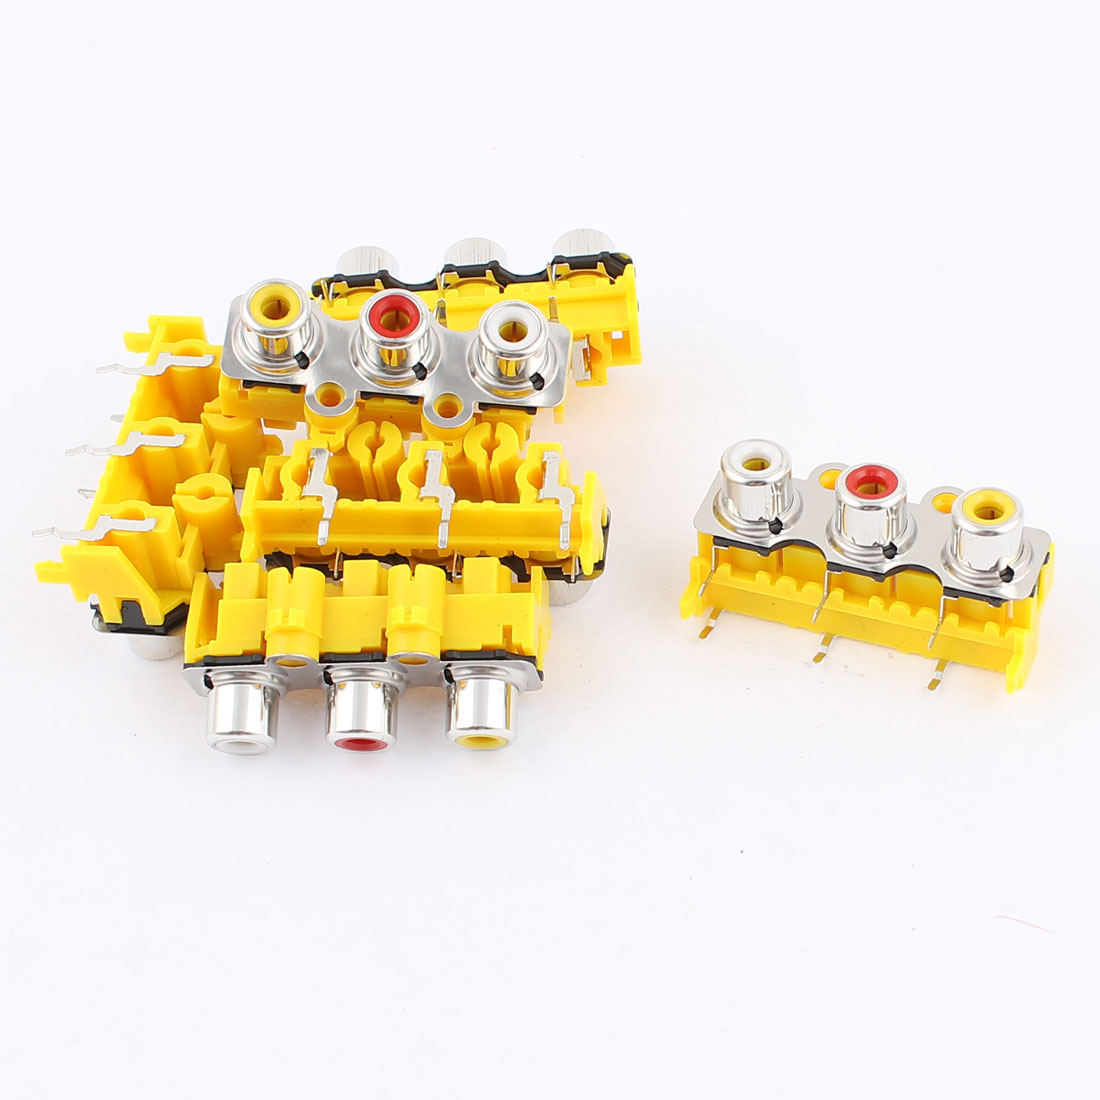 6pcs Yellow Plastic 3 Female Outlet AV Concentric RCA Socket Board